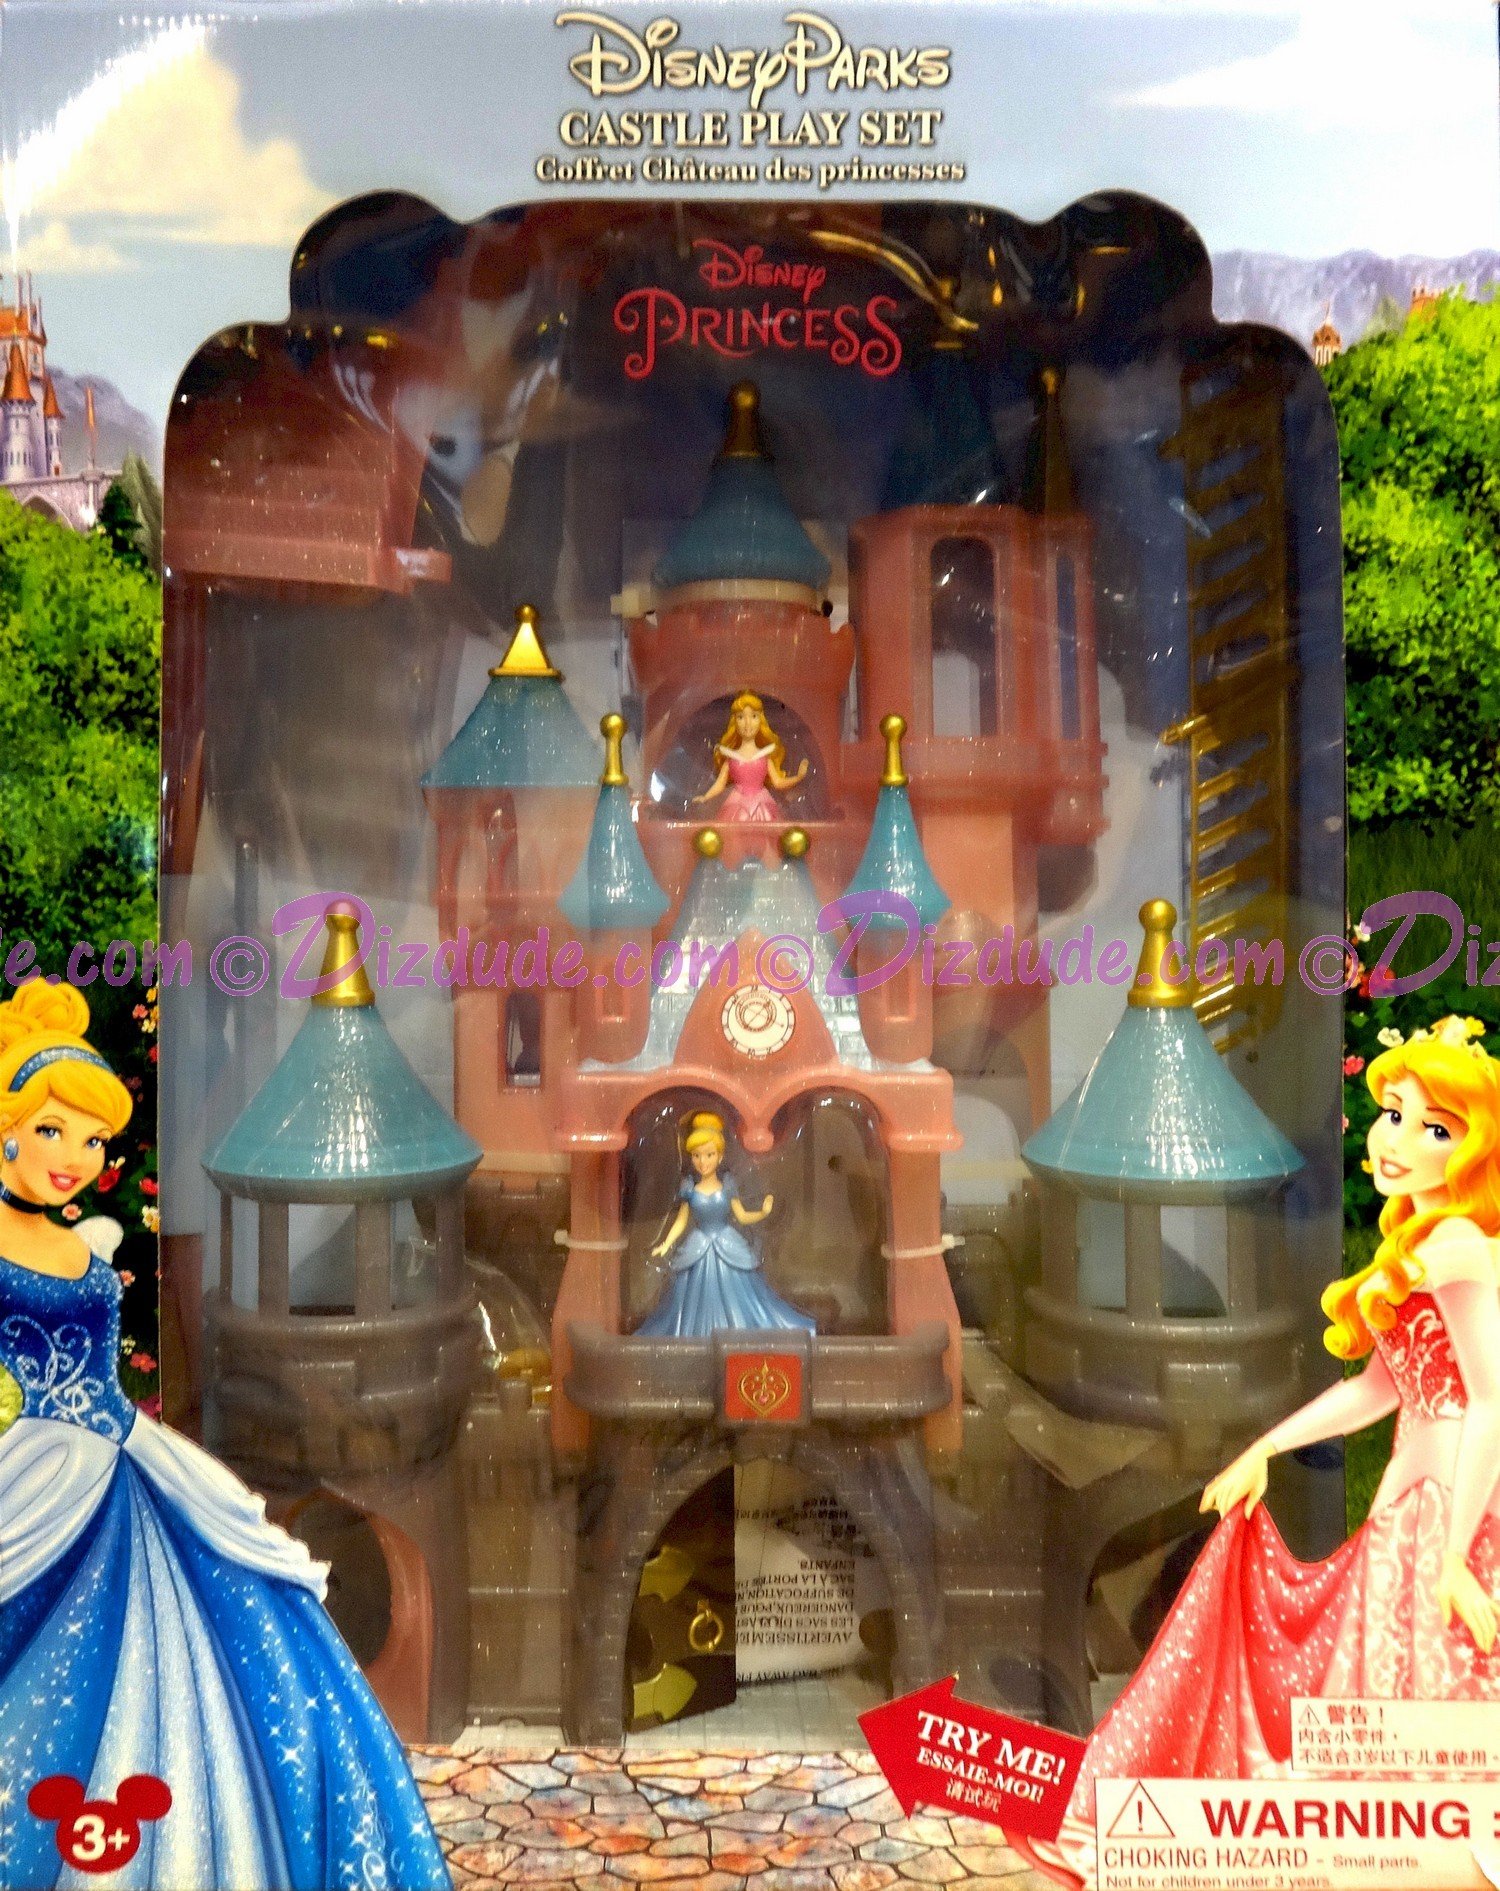 Disney Princess Castle Play Set © Dizdude.com